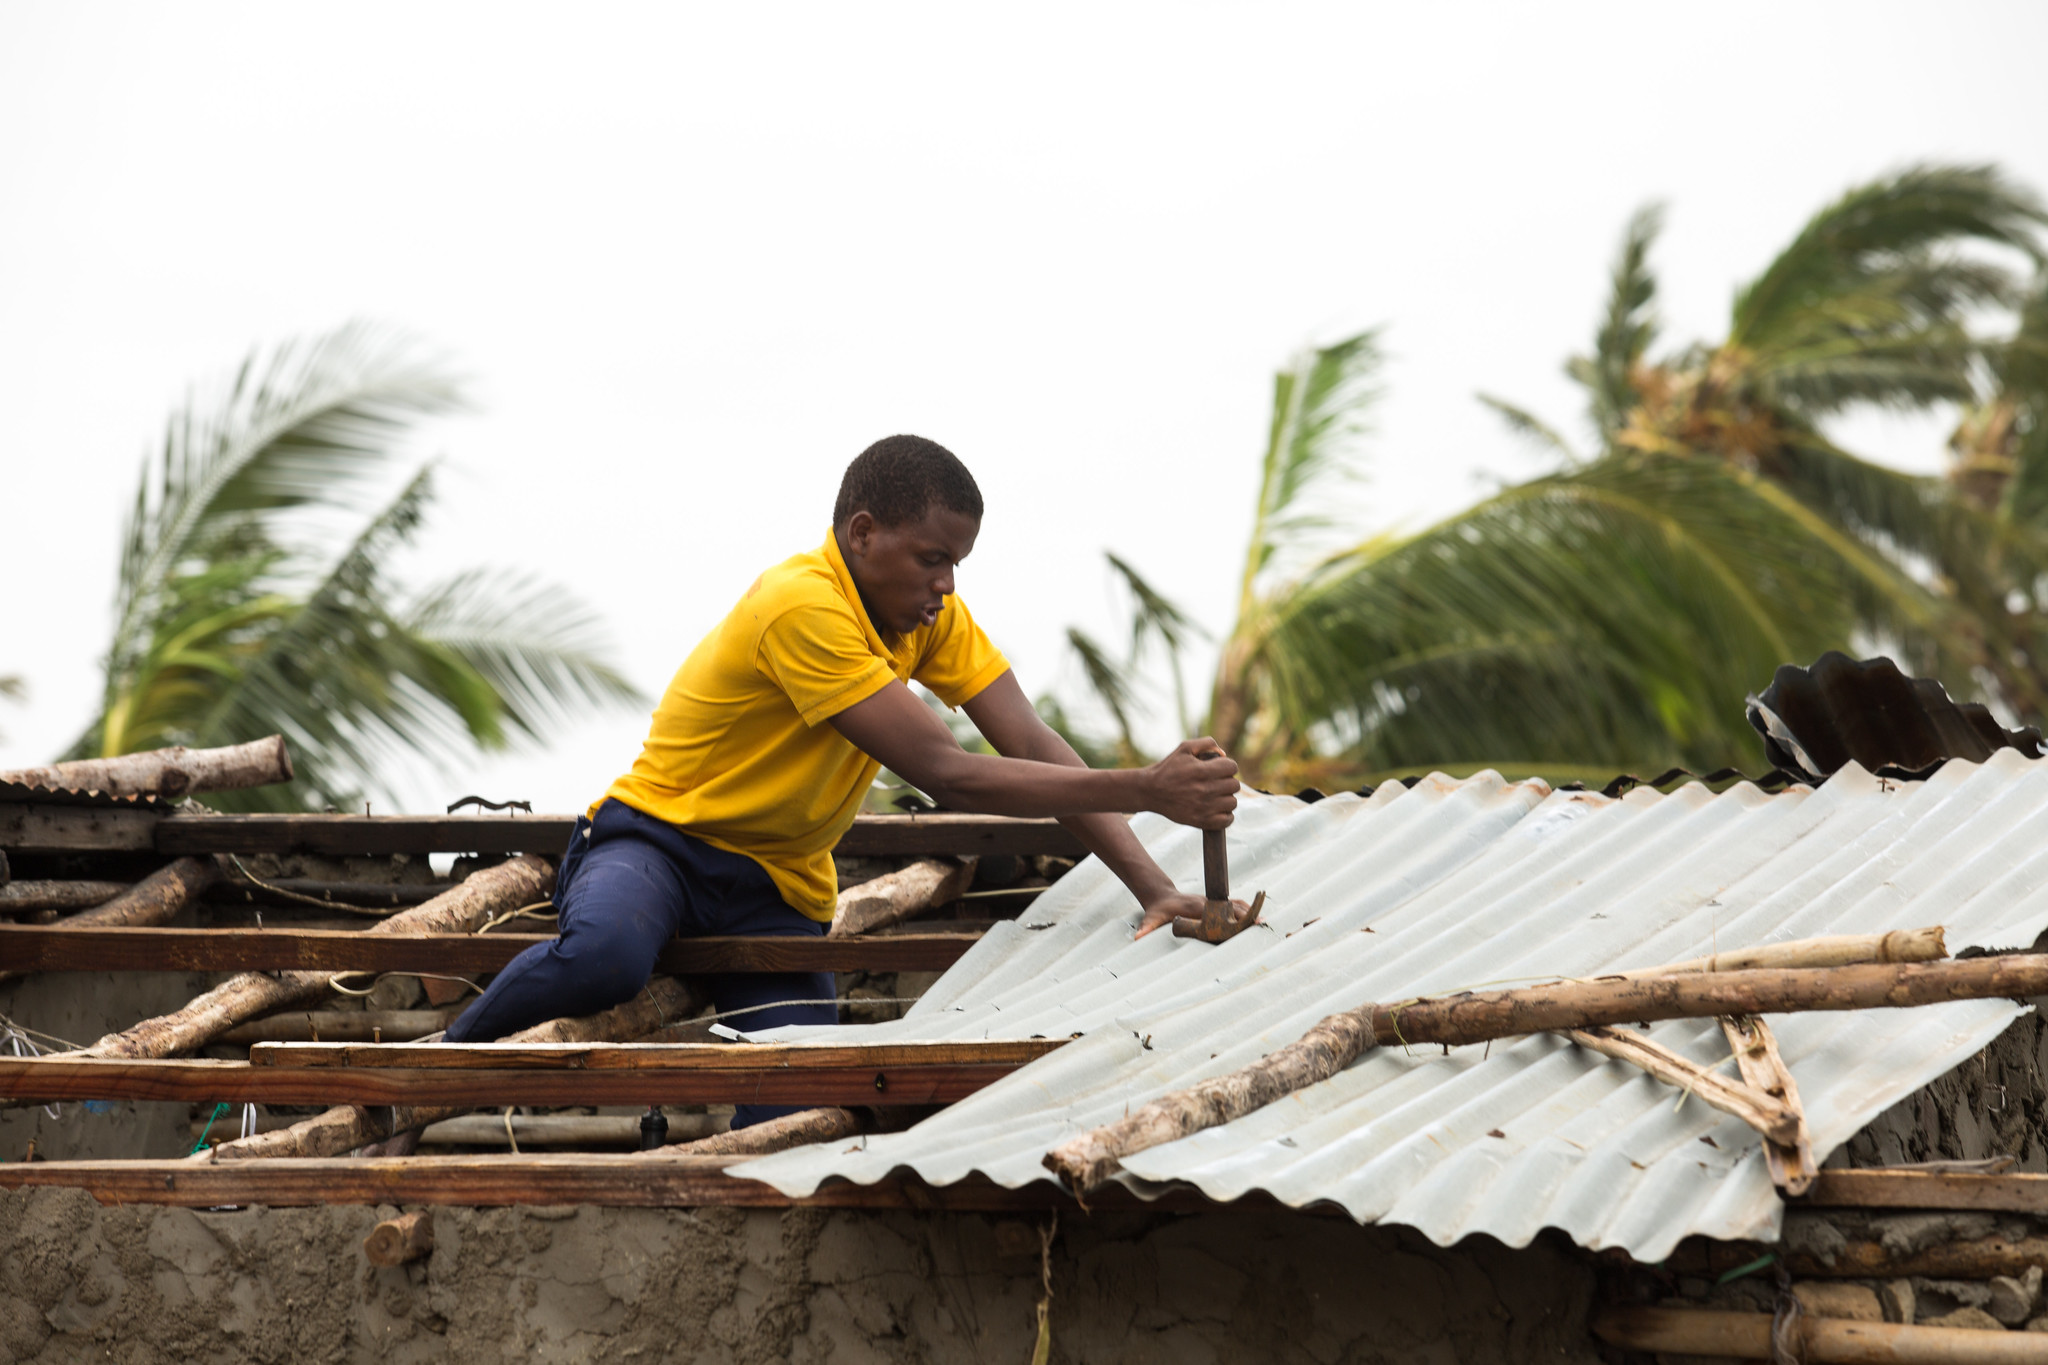 Rebuilding after Cyclone Idai. (Photo: Denis Onyodi / IFRC/DRK/Climate Centre via Flickr CC)